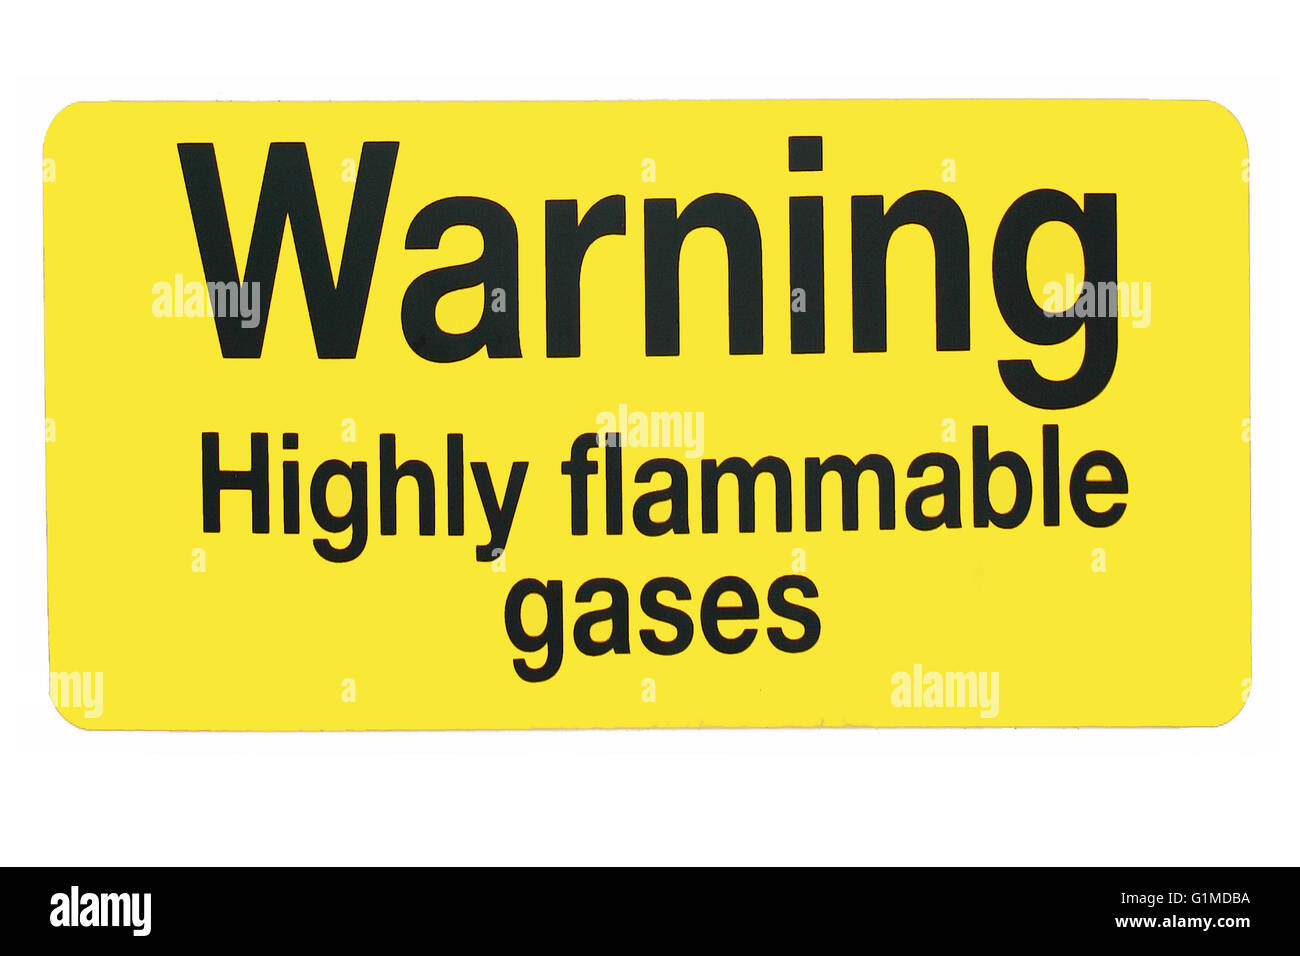 Flammable gases warning sign in yellow and black. - Stock Image